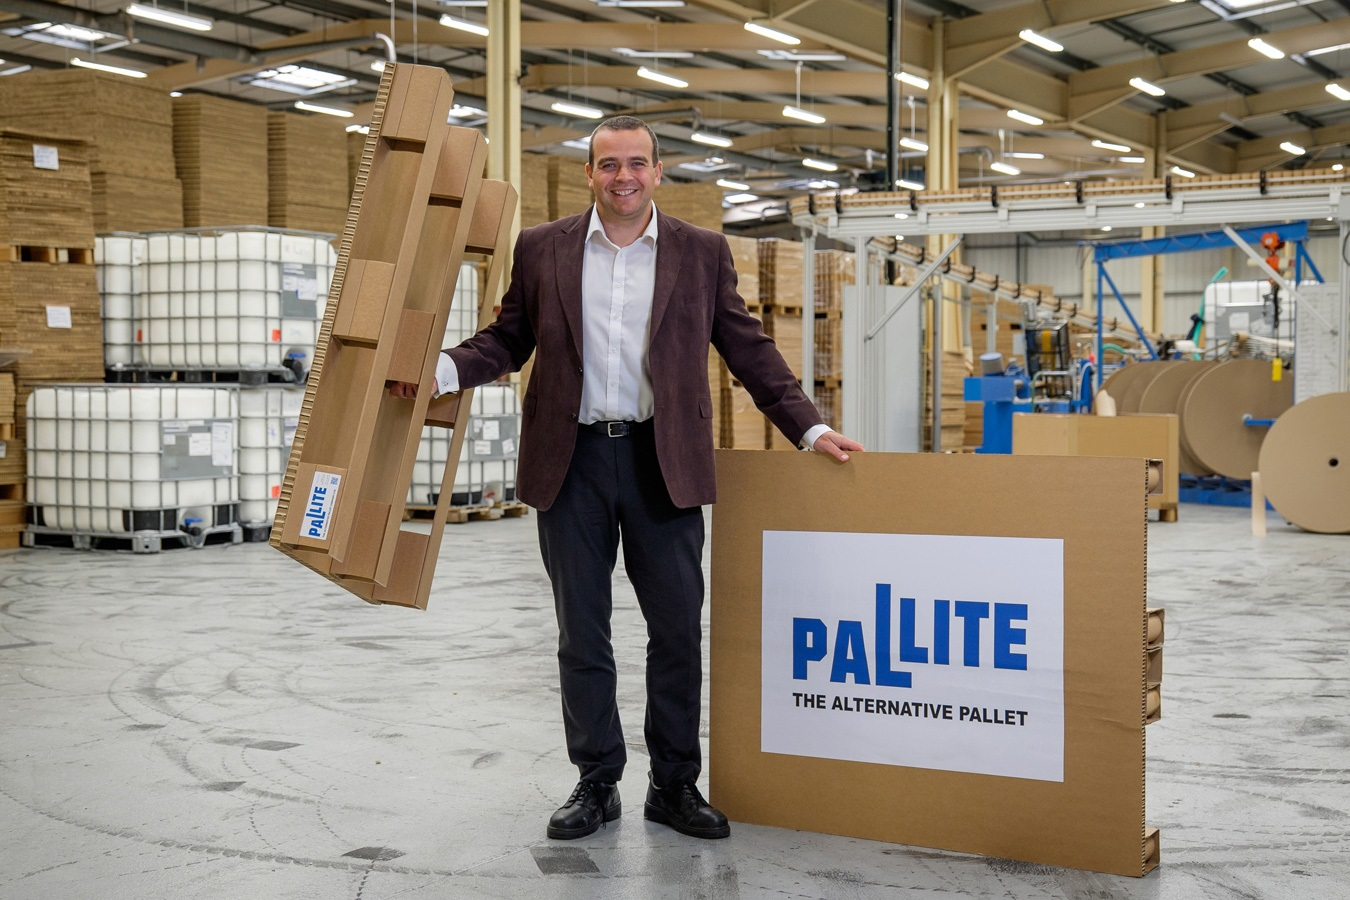 Sales Director David Rose demonstrates the PALLITE products